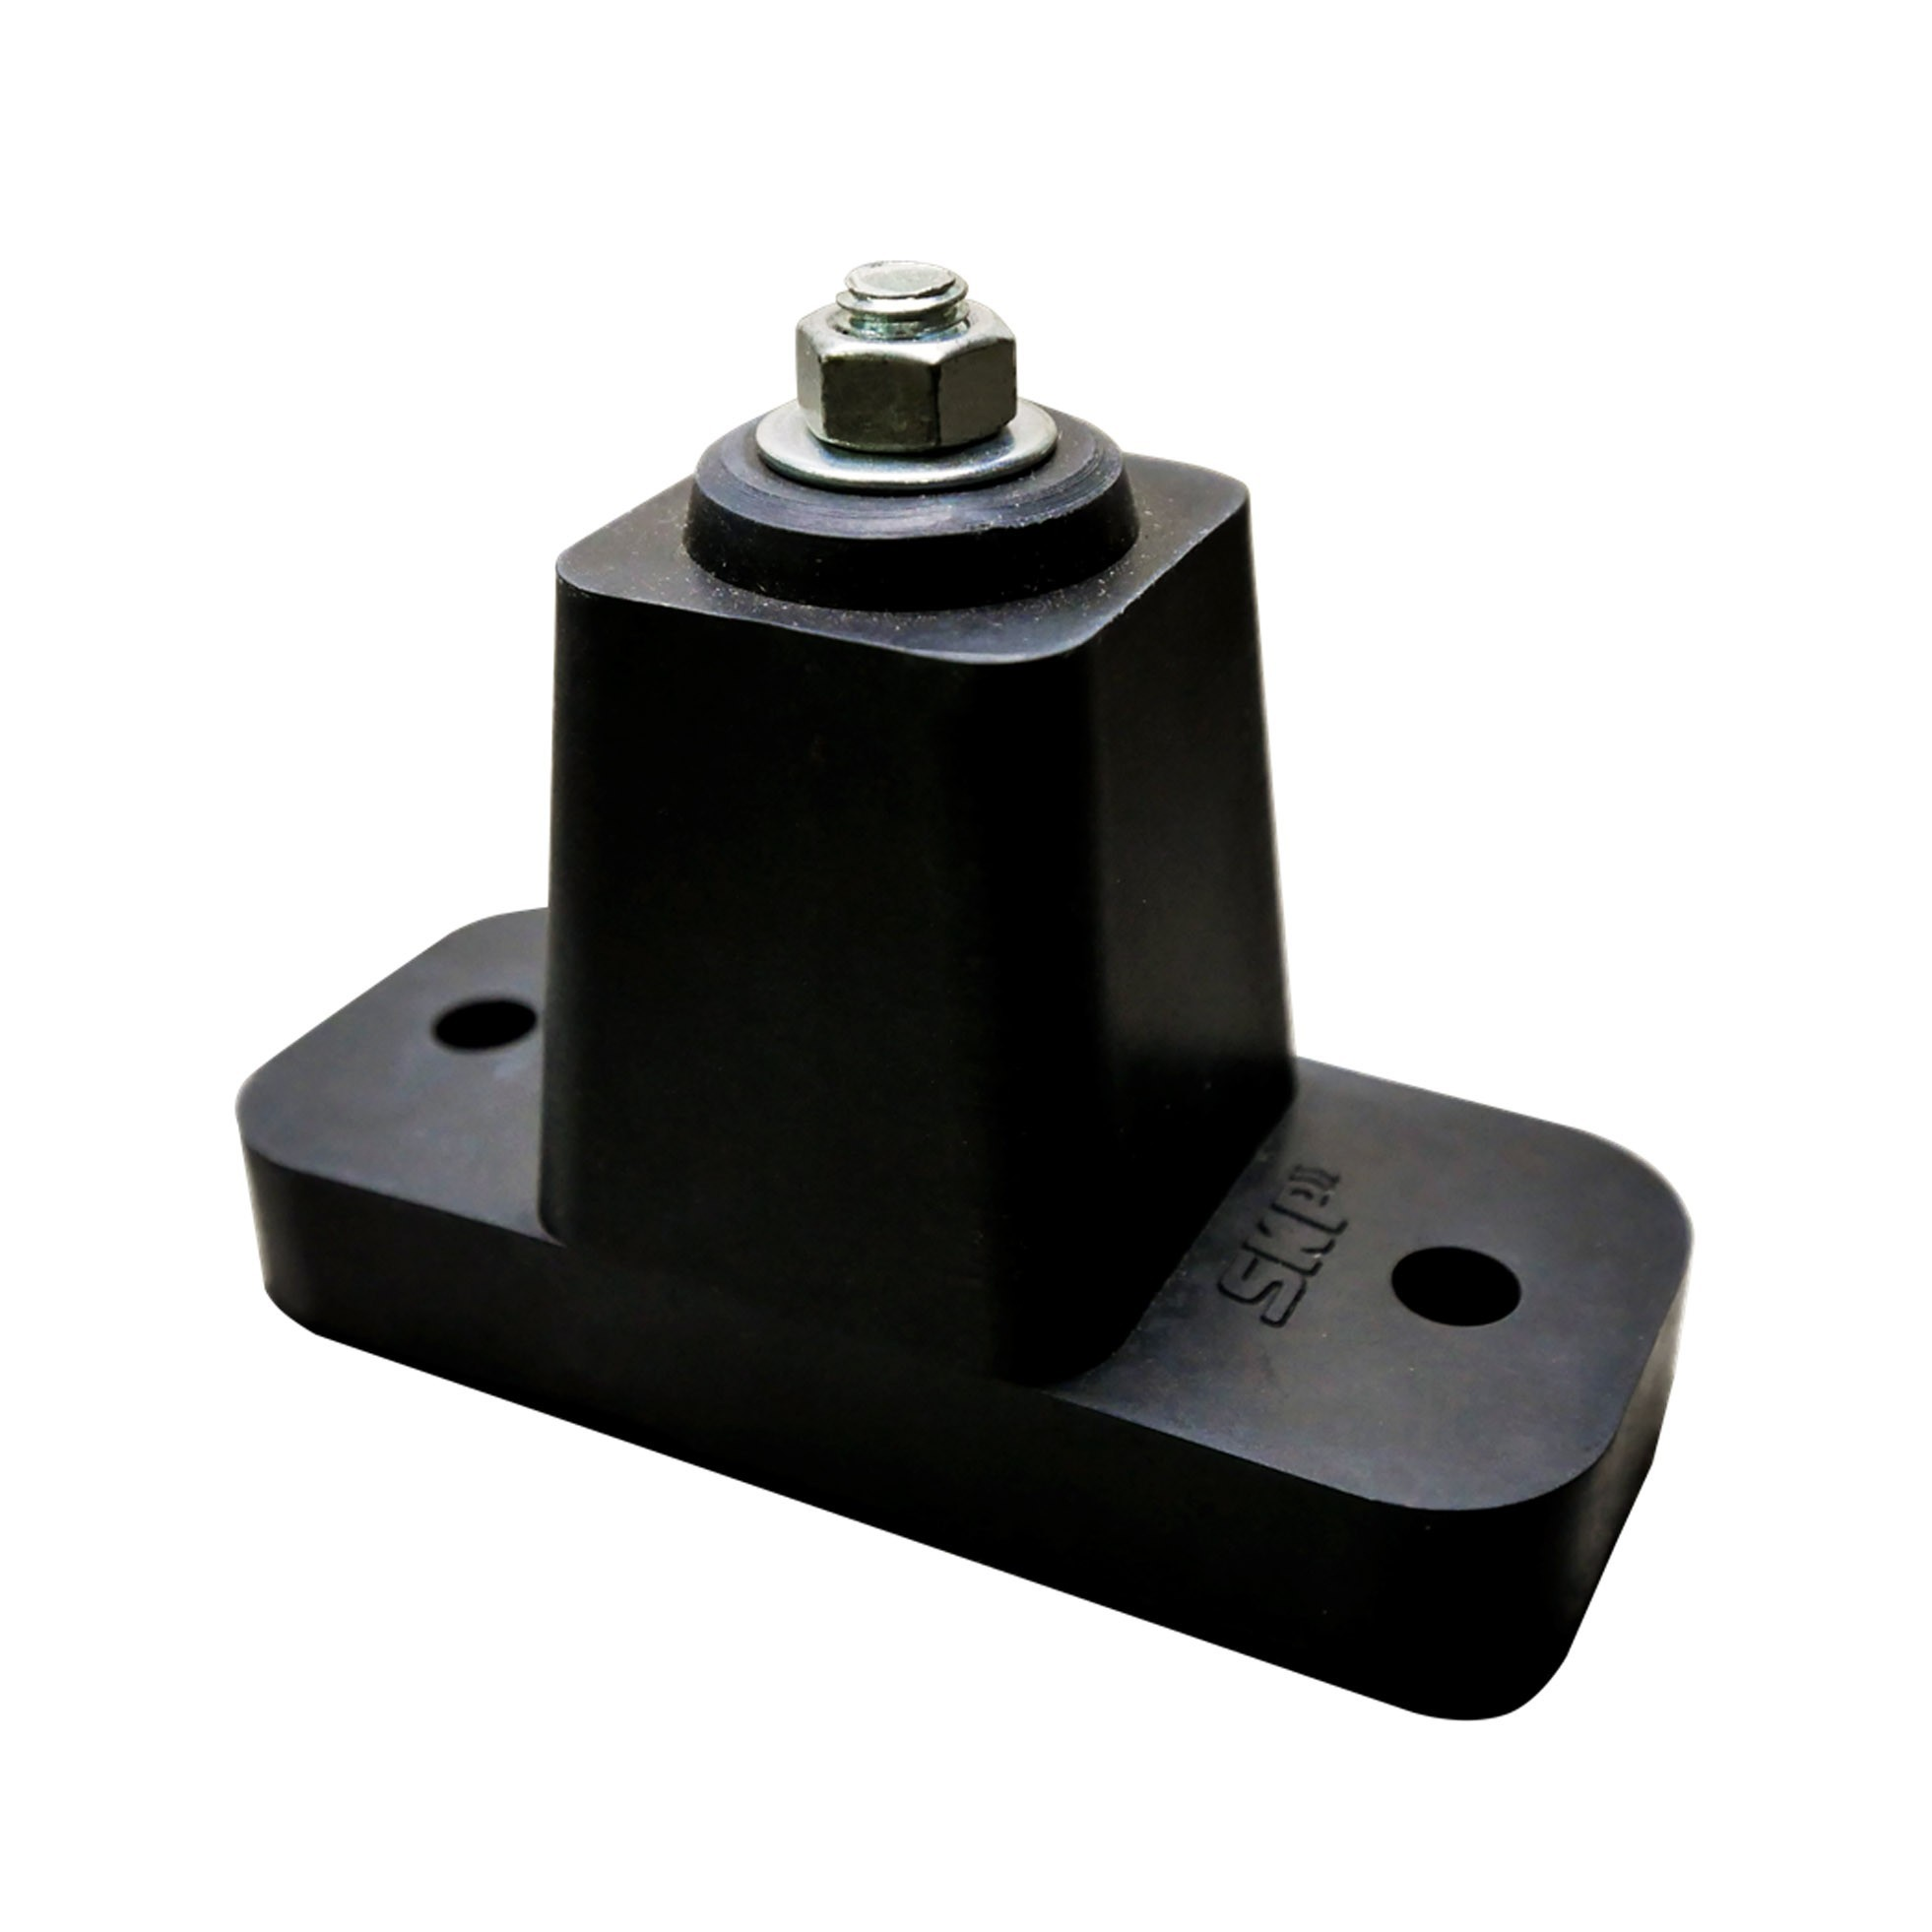 Rubber Support Condensing 3 inch